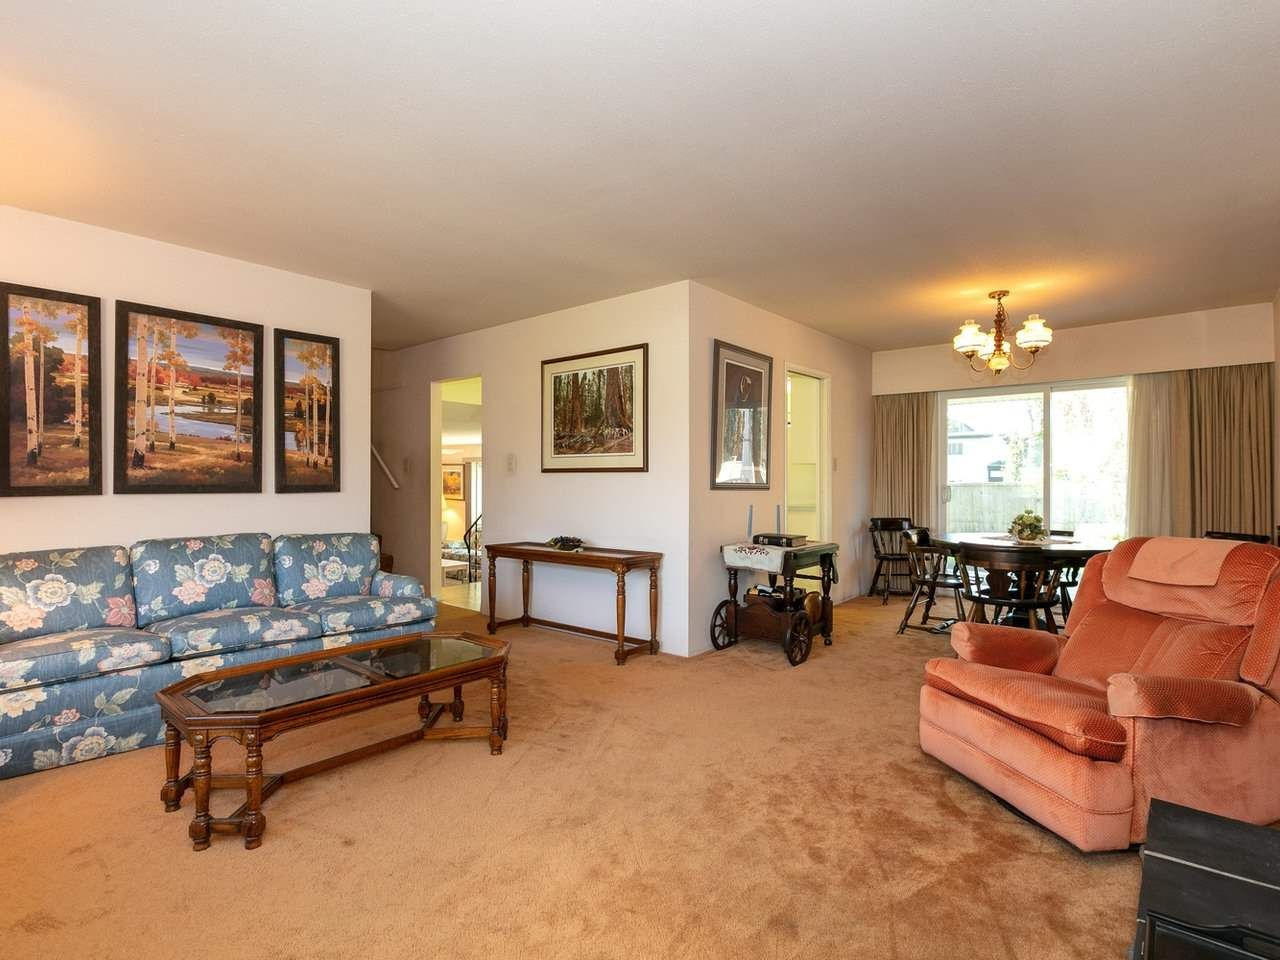 Photo 5: Photos: 1422 GROVER Avenue in Coquitlam: Central Coquitlam House for sale : MLS®# R2568207